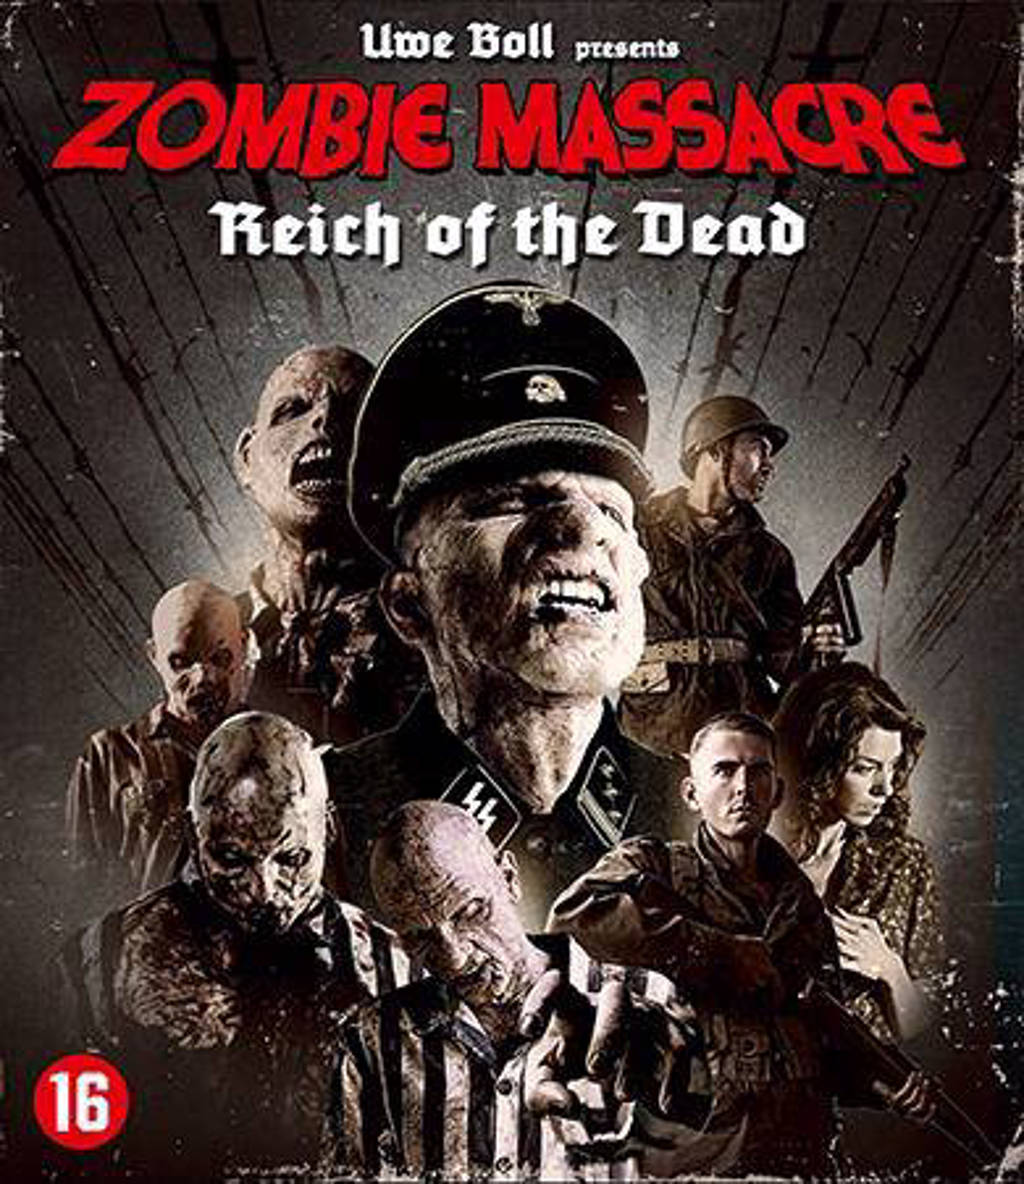 Zombie massacre 2 - Reich of the dead (Blu-ray)